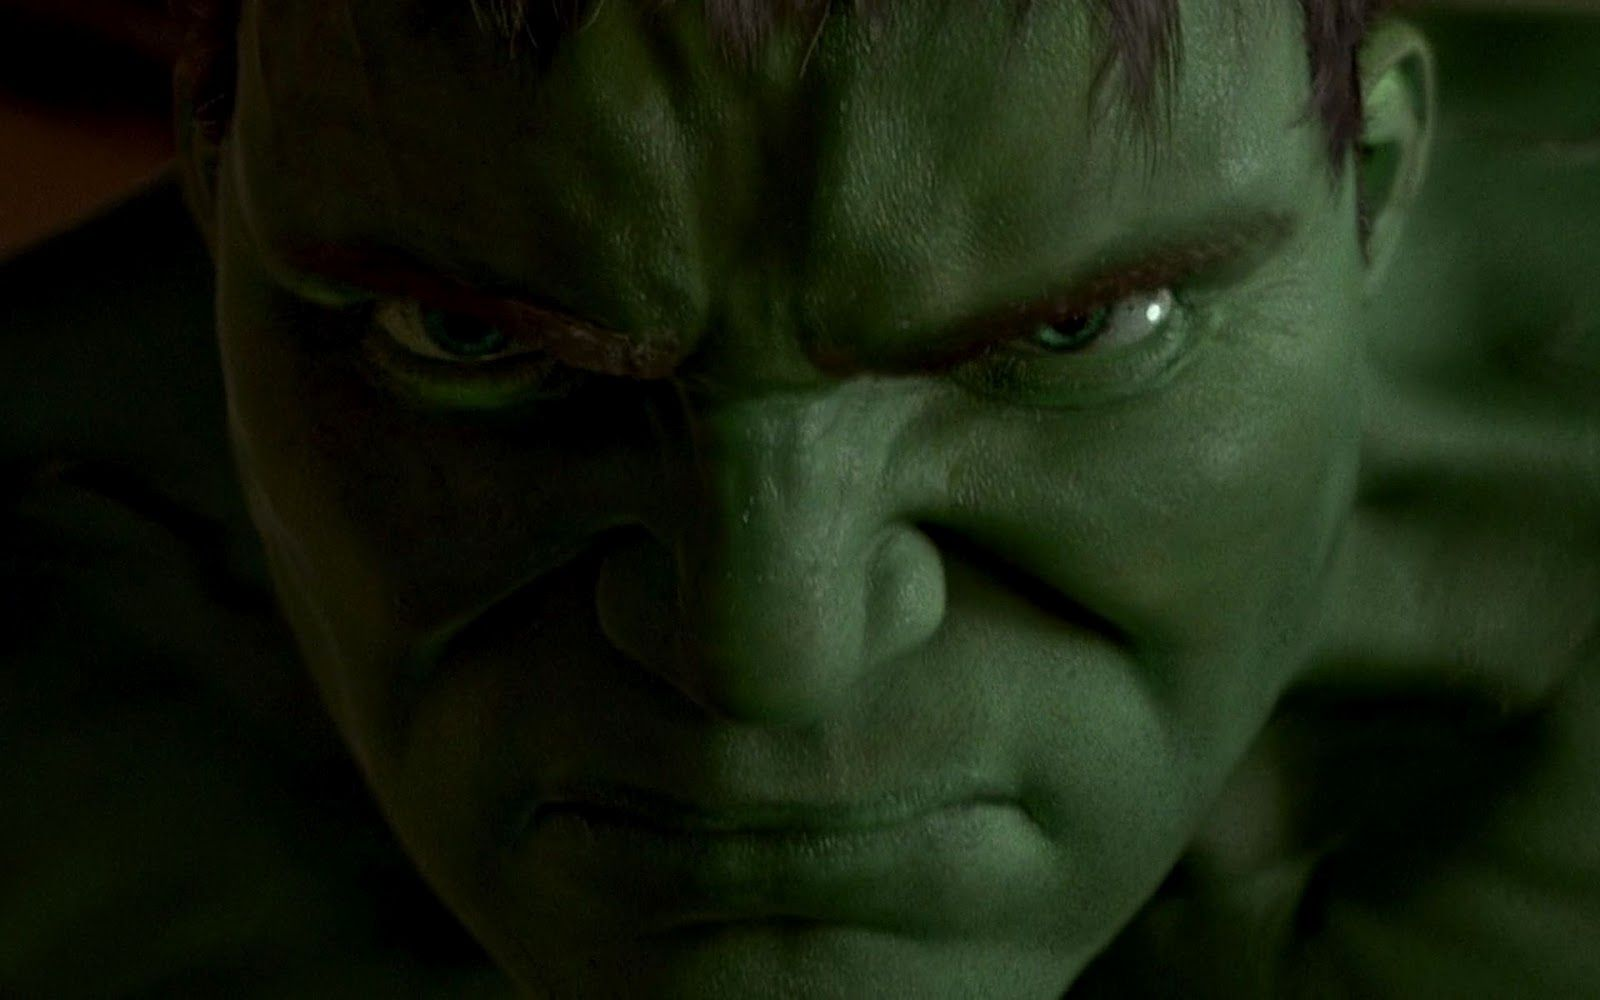 Great Wallpaper Mobile Hulk - c447c9a94515e05b91896c2ee38ed317  Perfect Image Reference_6474100.jpg